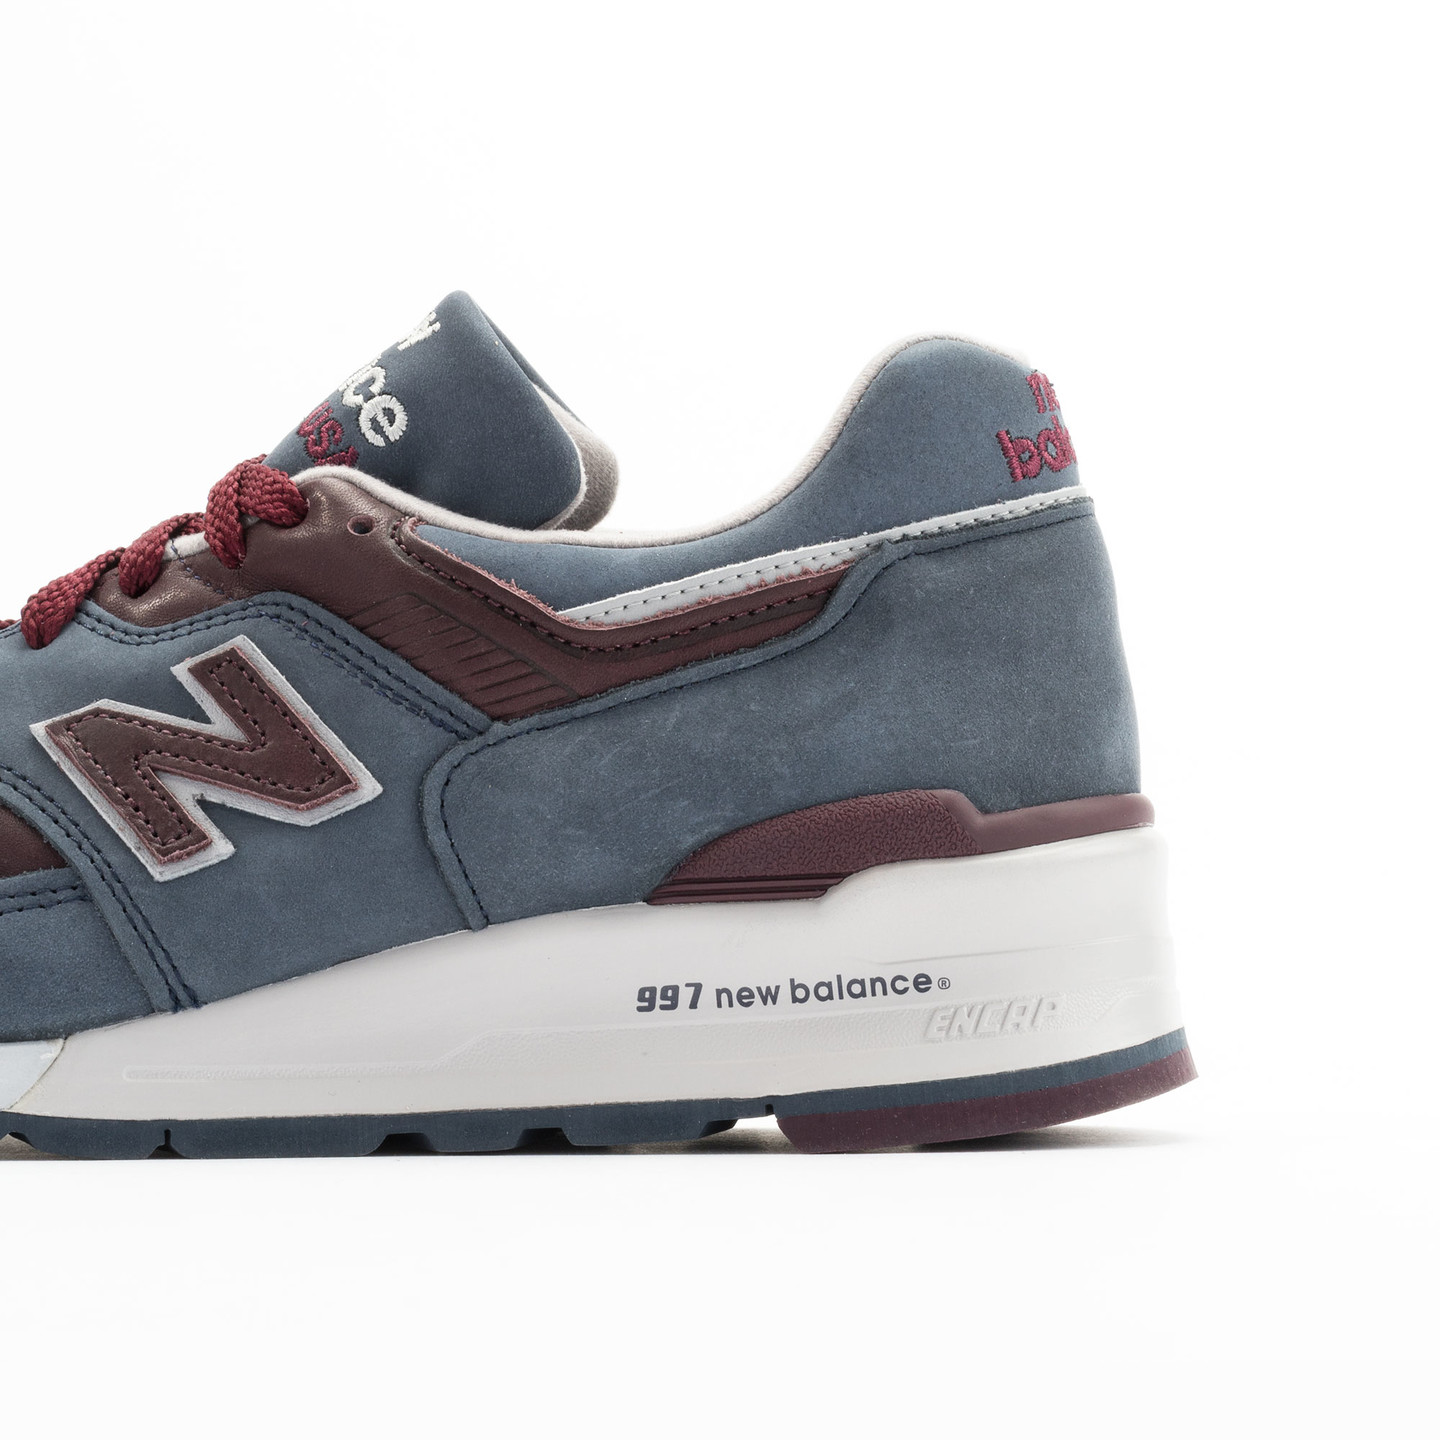 New Balance M997 DGM - Made in USA Grey Steel / Burgundy M997DGM-44.5